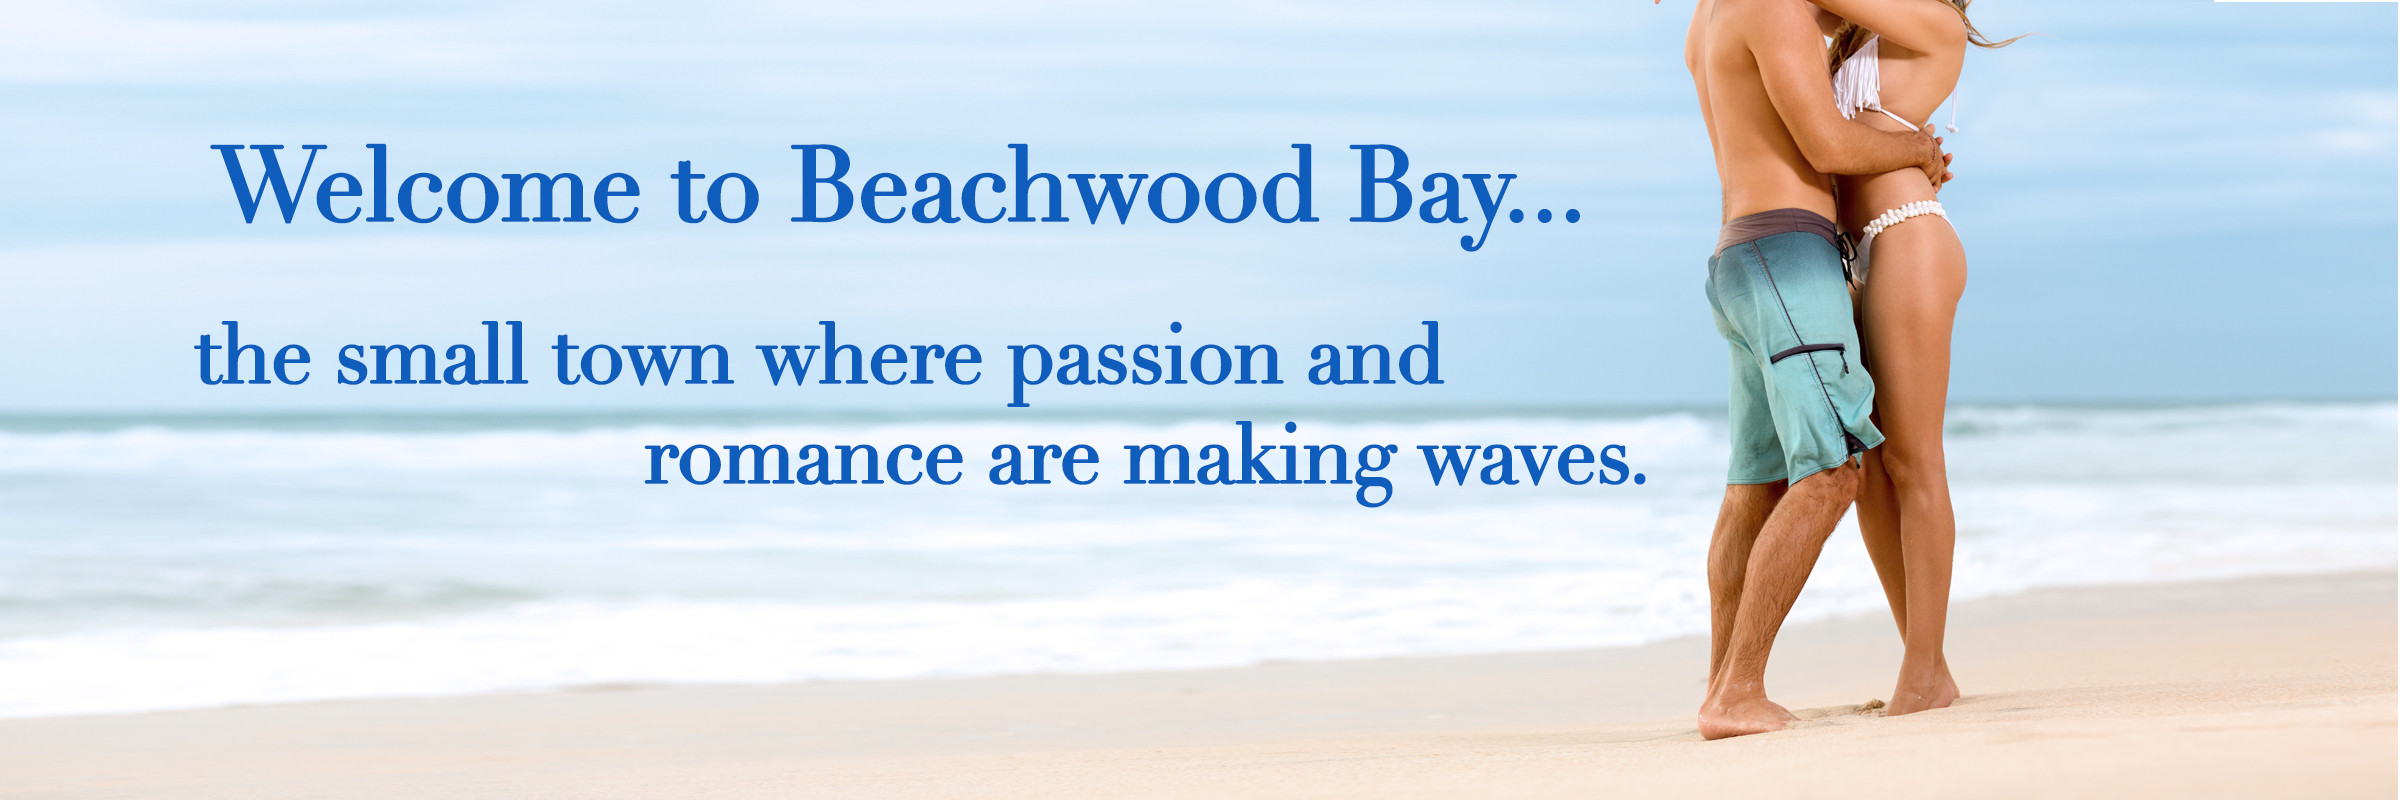 beachwood bay